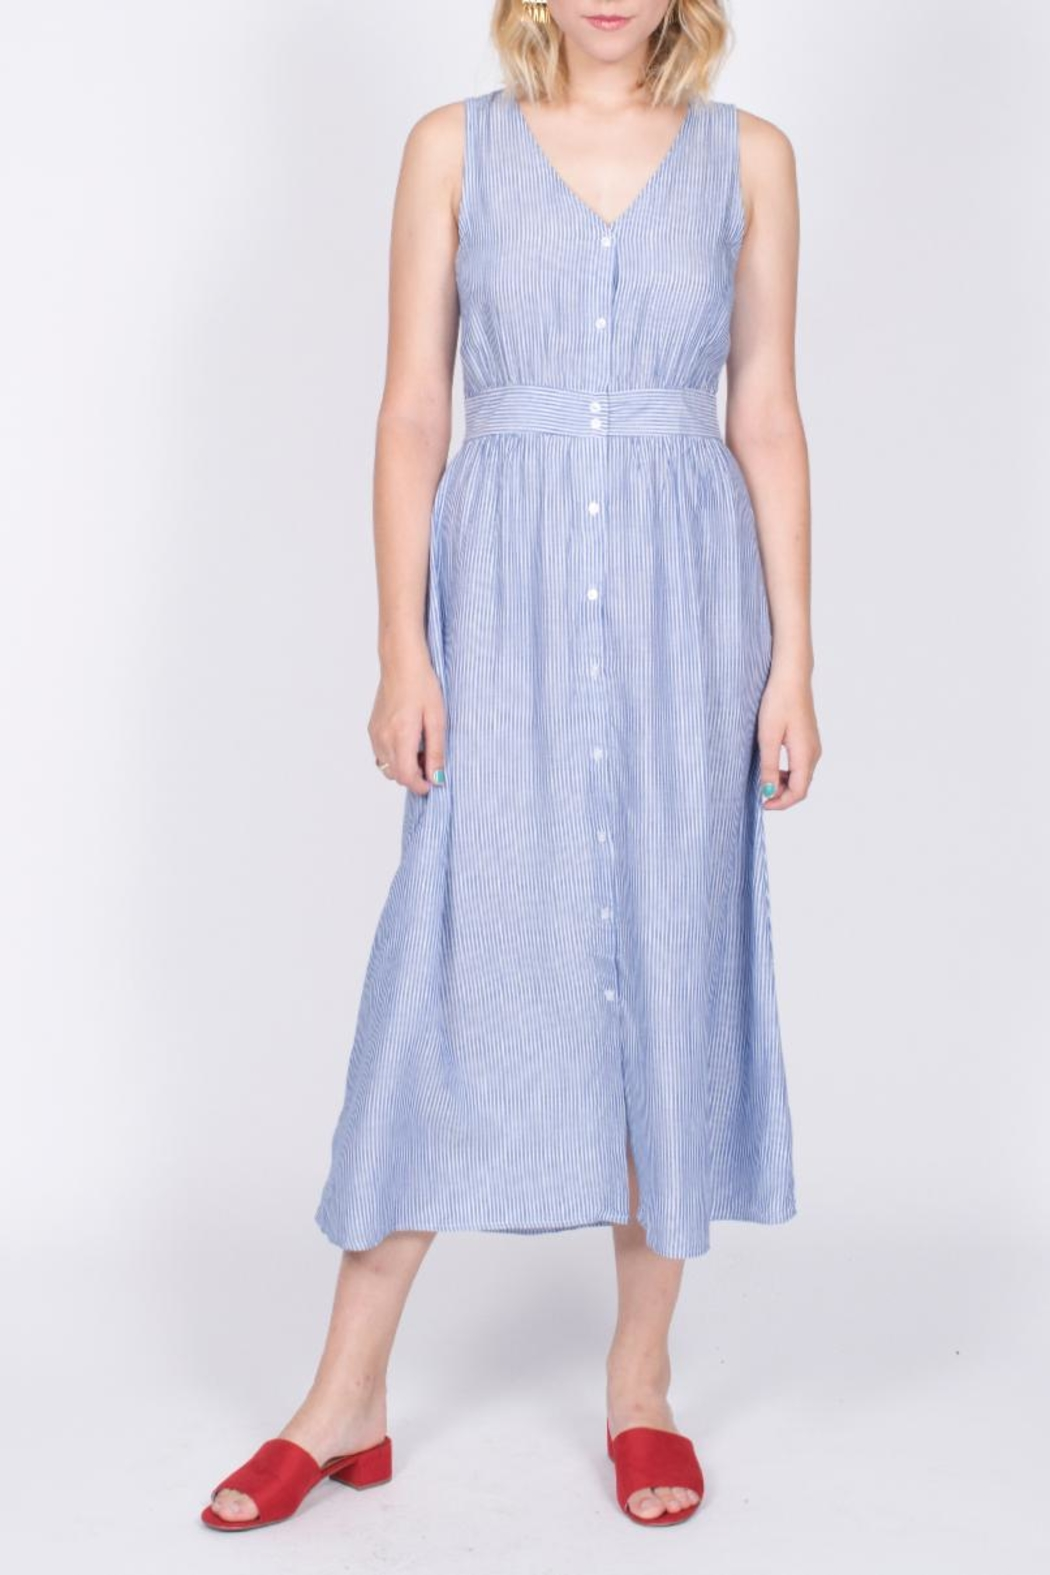 She + Sky Button Down Midi Dress - Front Cropped Image